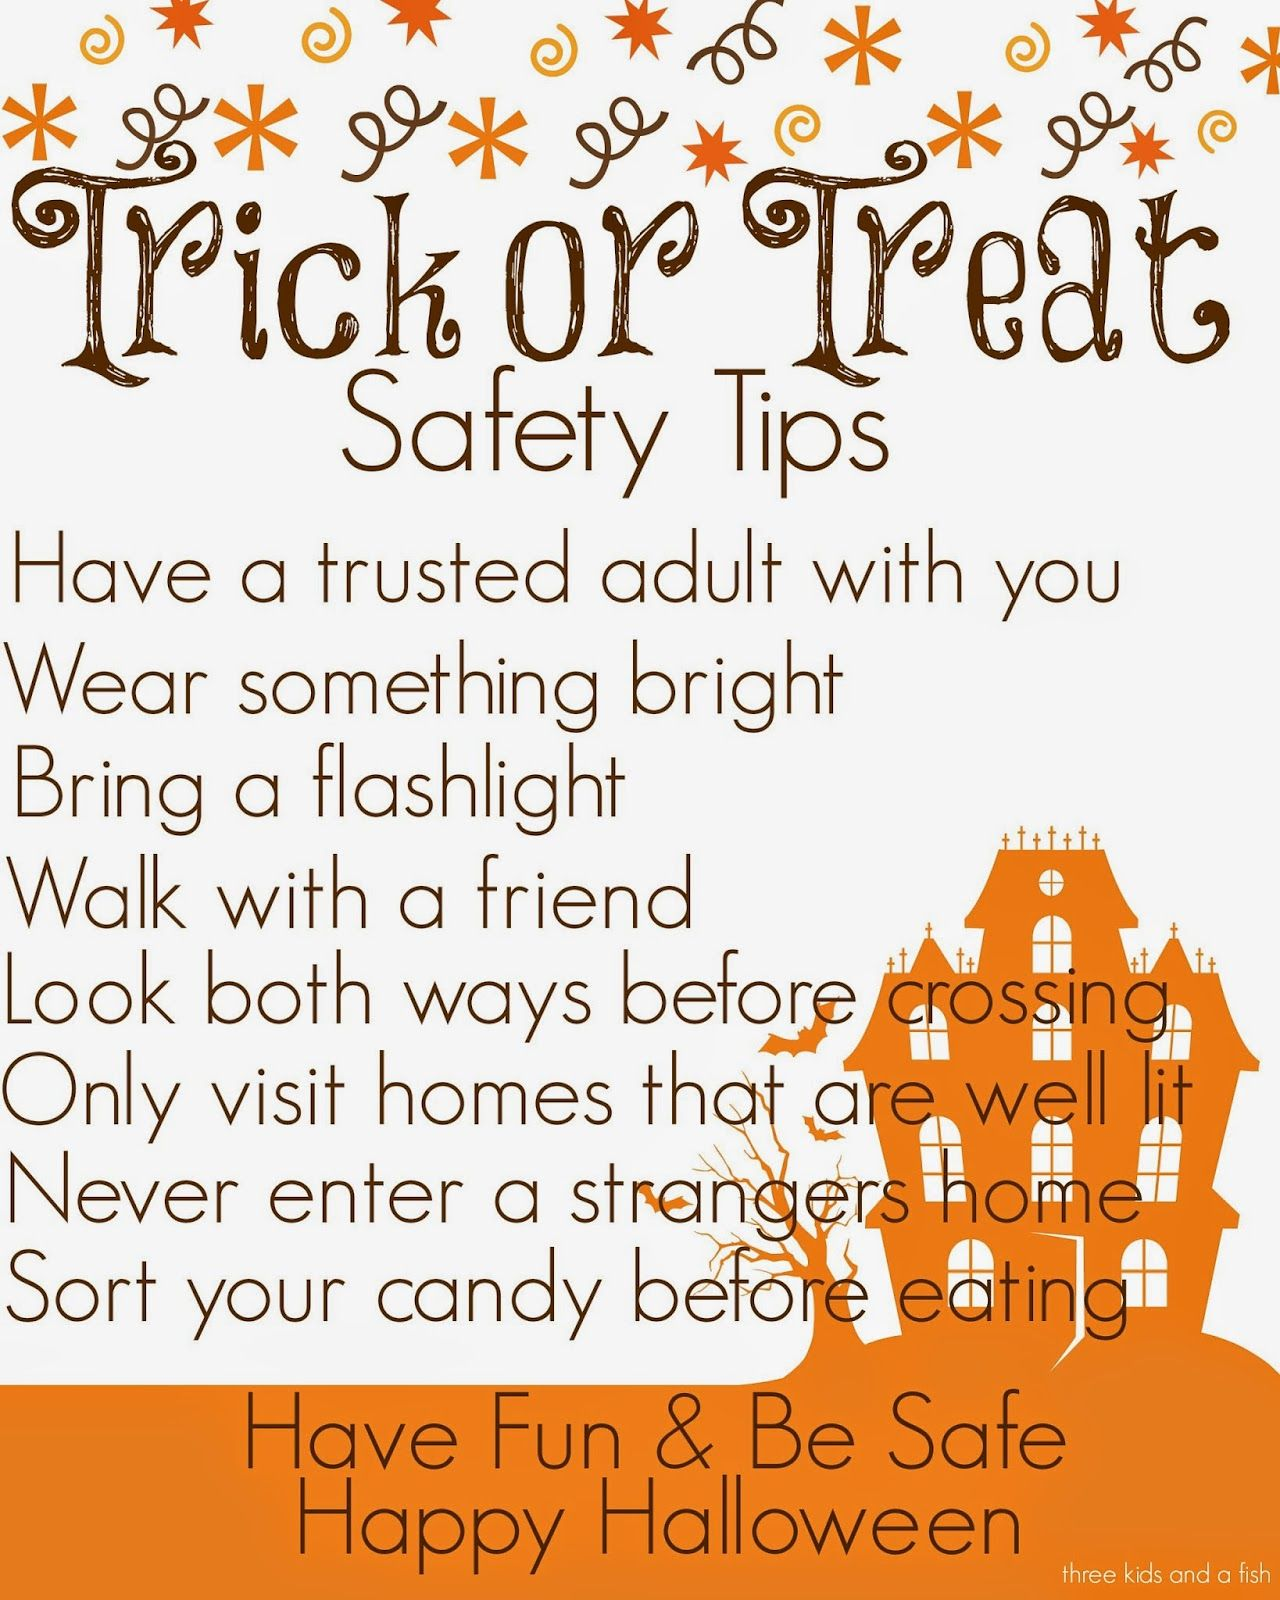 Trick or Treat Safety Tips Halloween safety tips